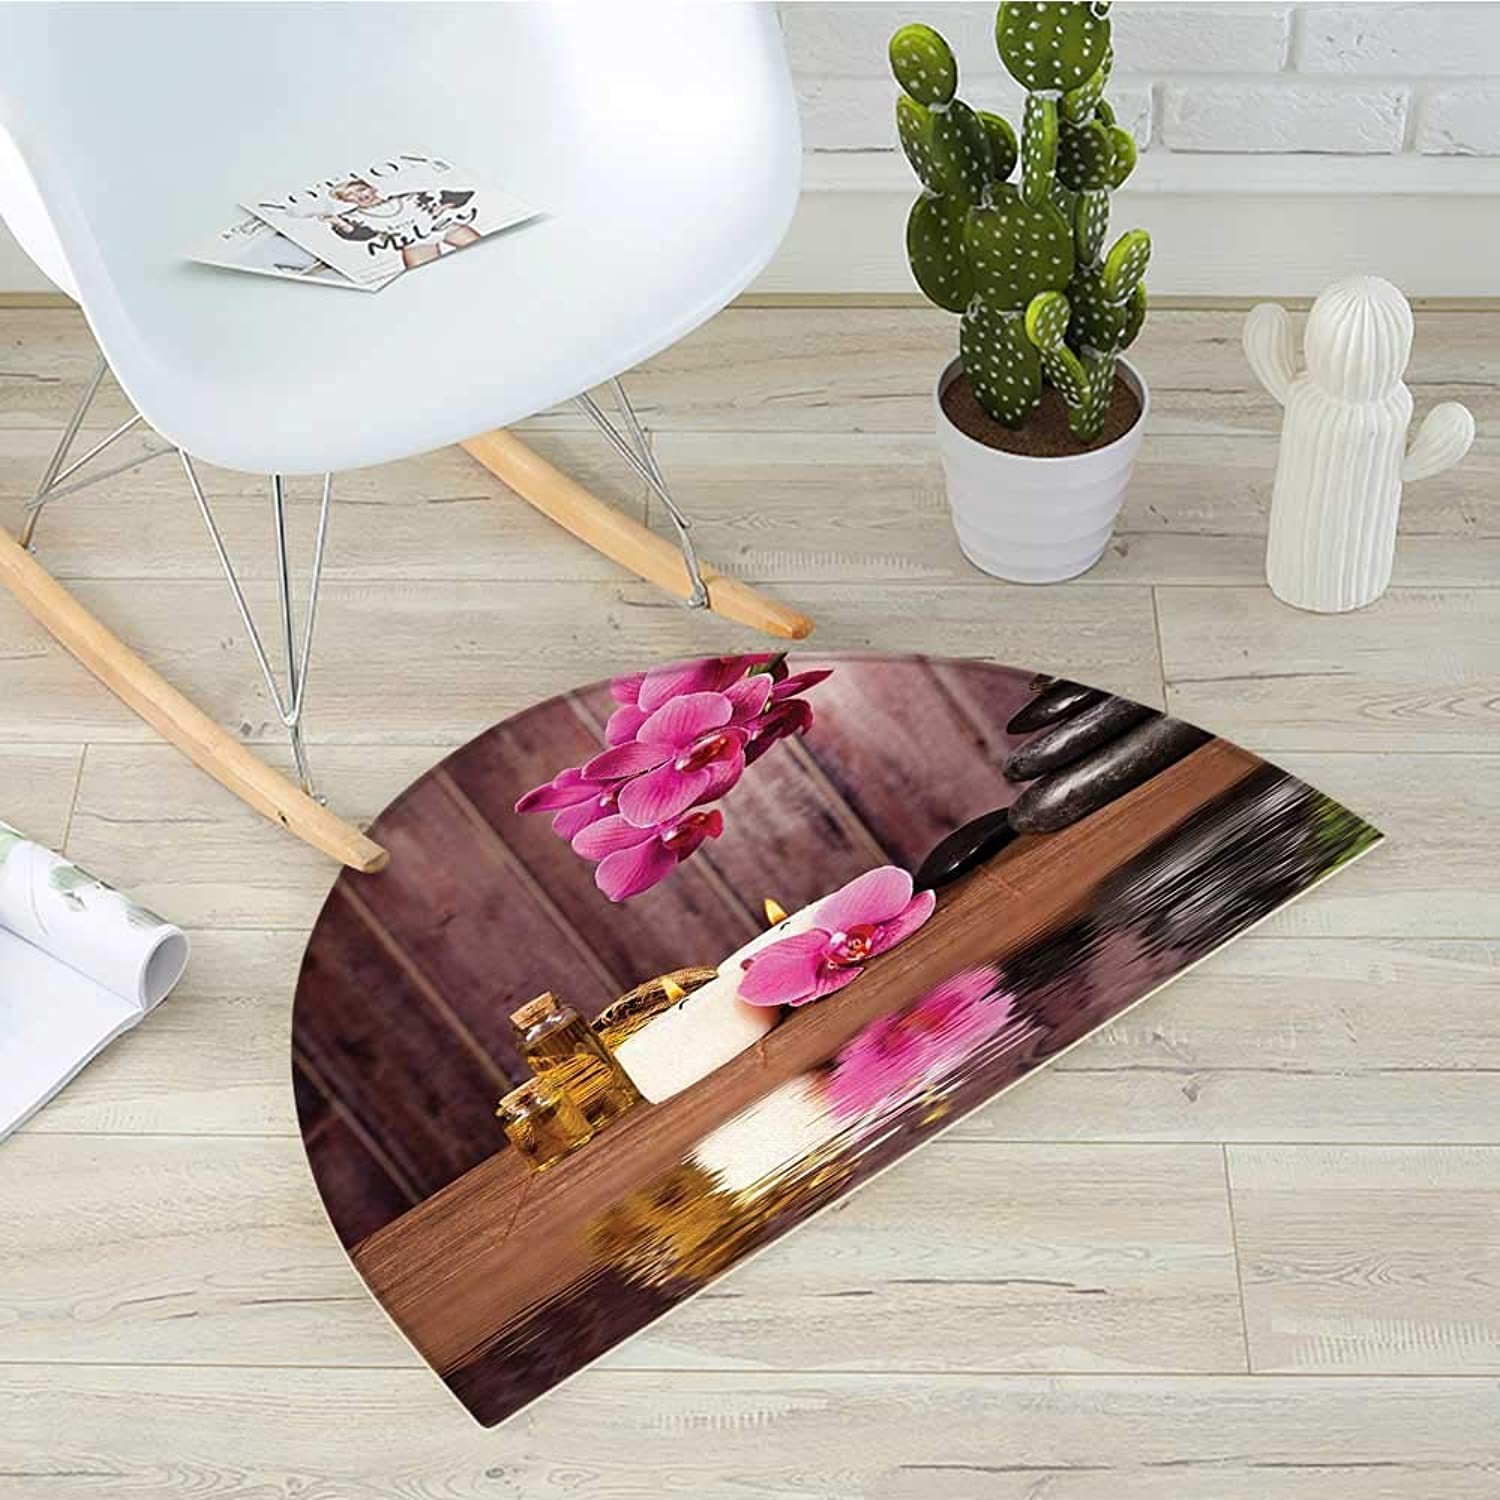 Spa Half Round Door mats Spa Flower and Water Reflection Aromatherapy Bamboo Blossom Candlelight Print Bathroom Mat H 39.3  xD 59  Pink Green Umber